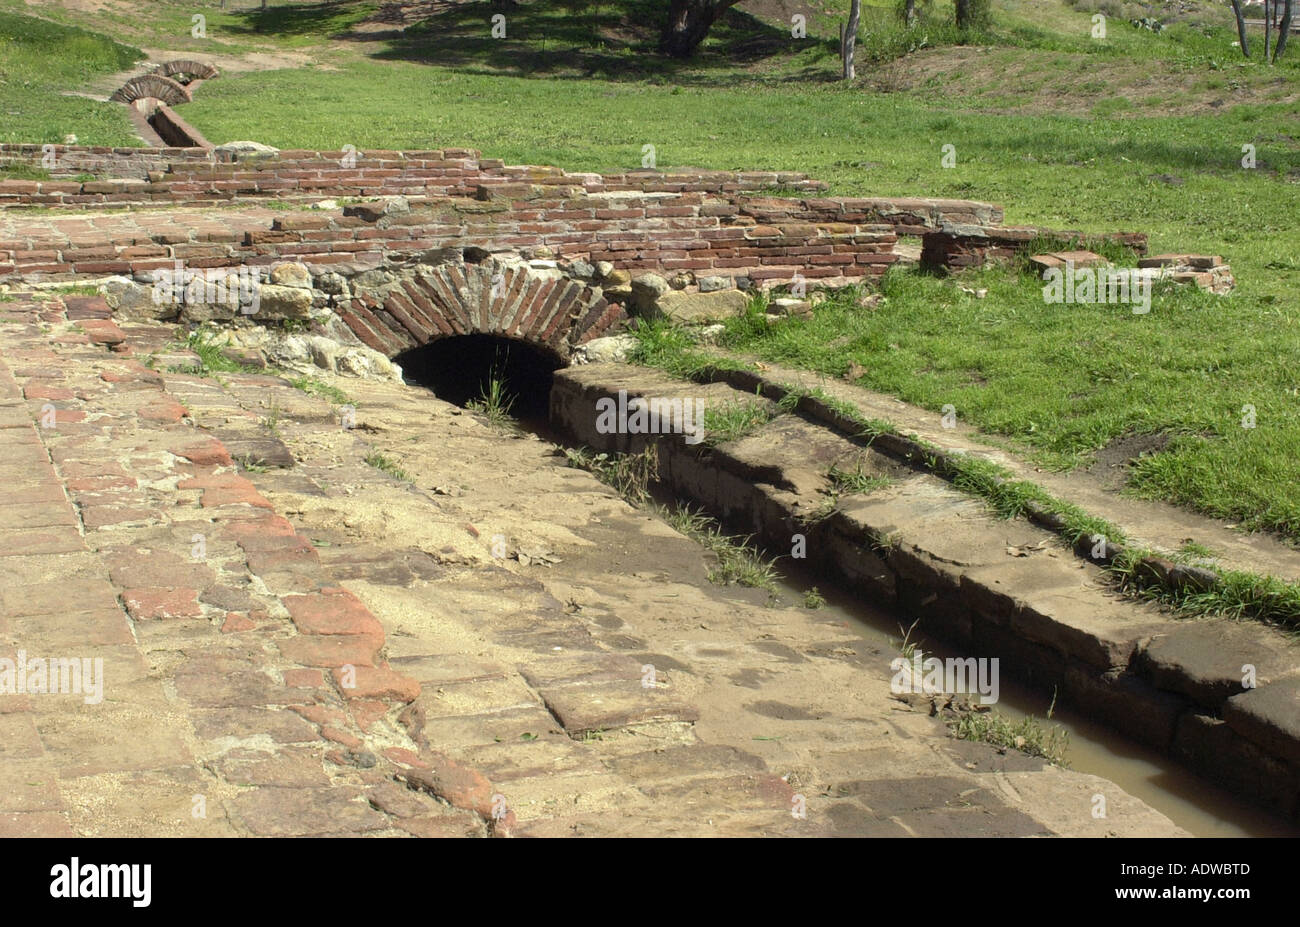 Irrigation systems built by Native Americans at San Luis Rey a Spanish colonial mission founded in 1772. Digital photograph - Stock Image